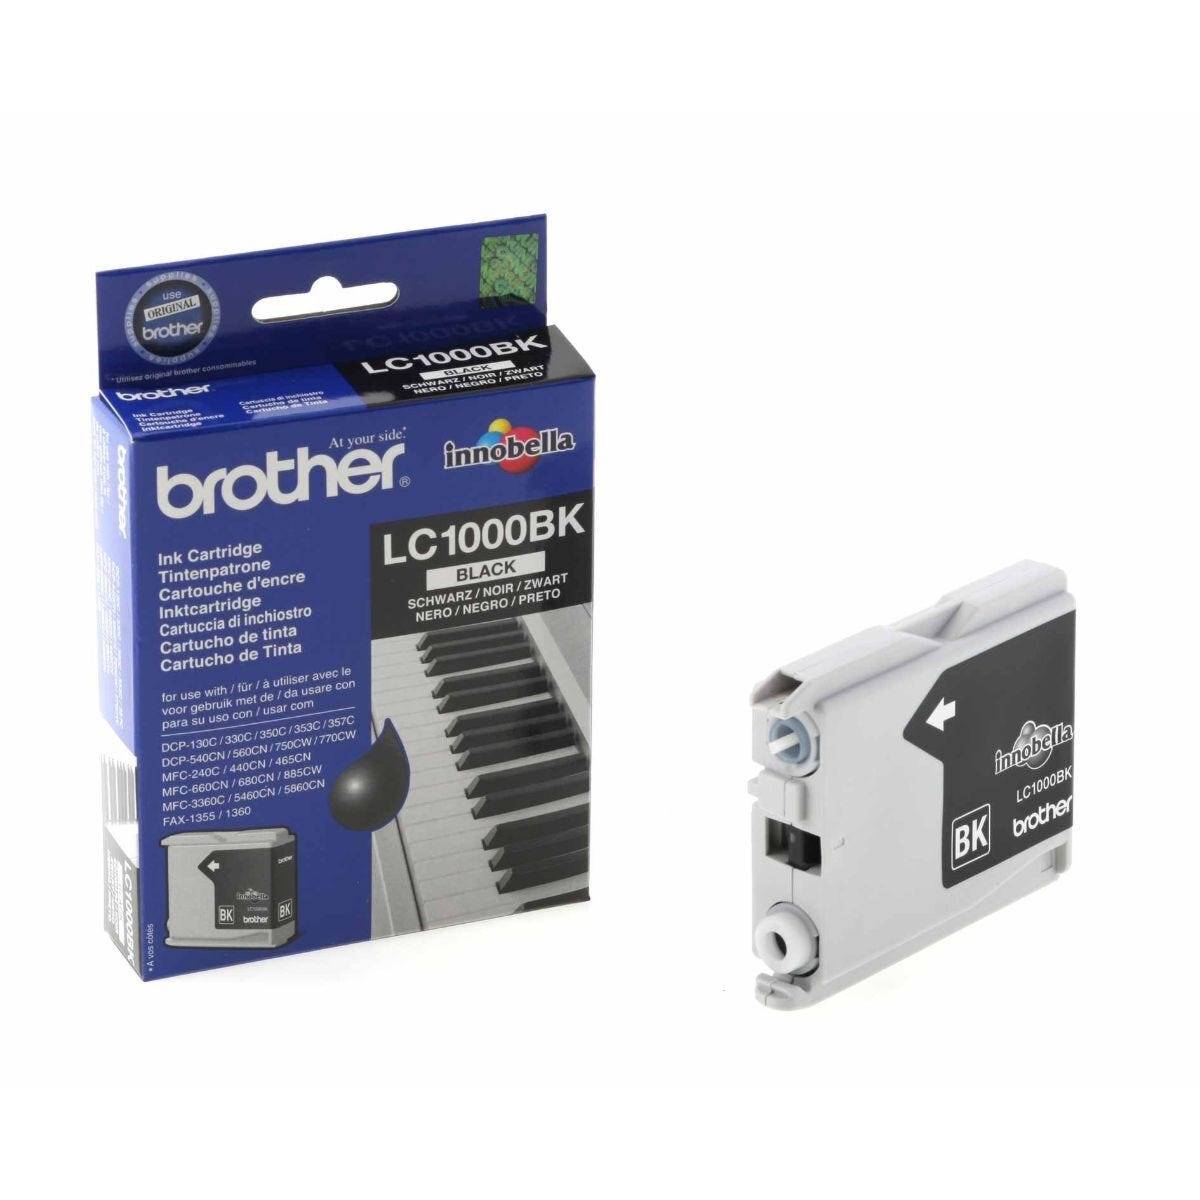 Brother LC1000BK Ink Cartridge